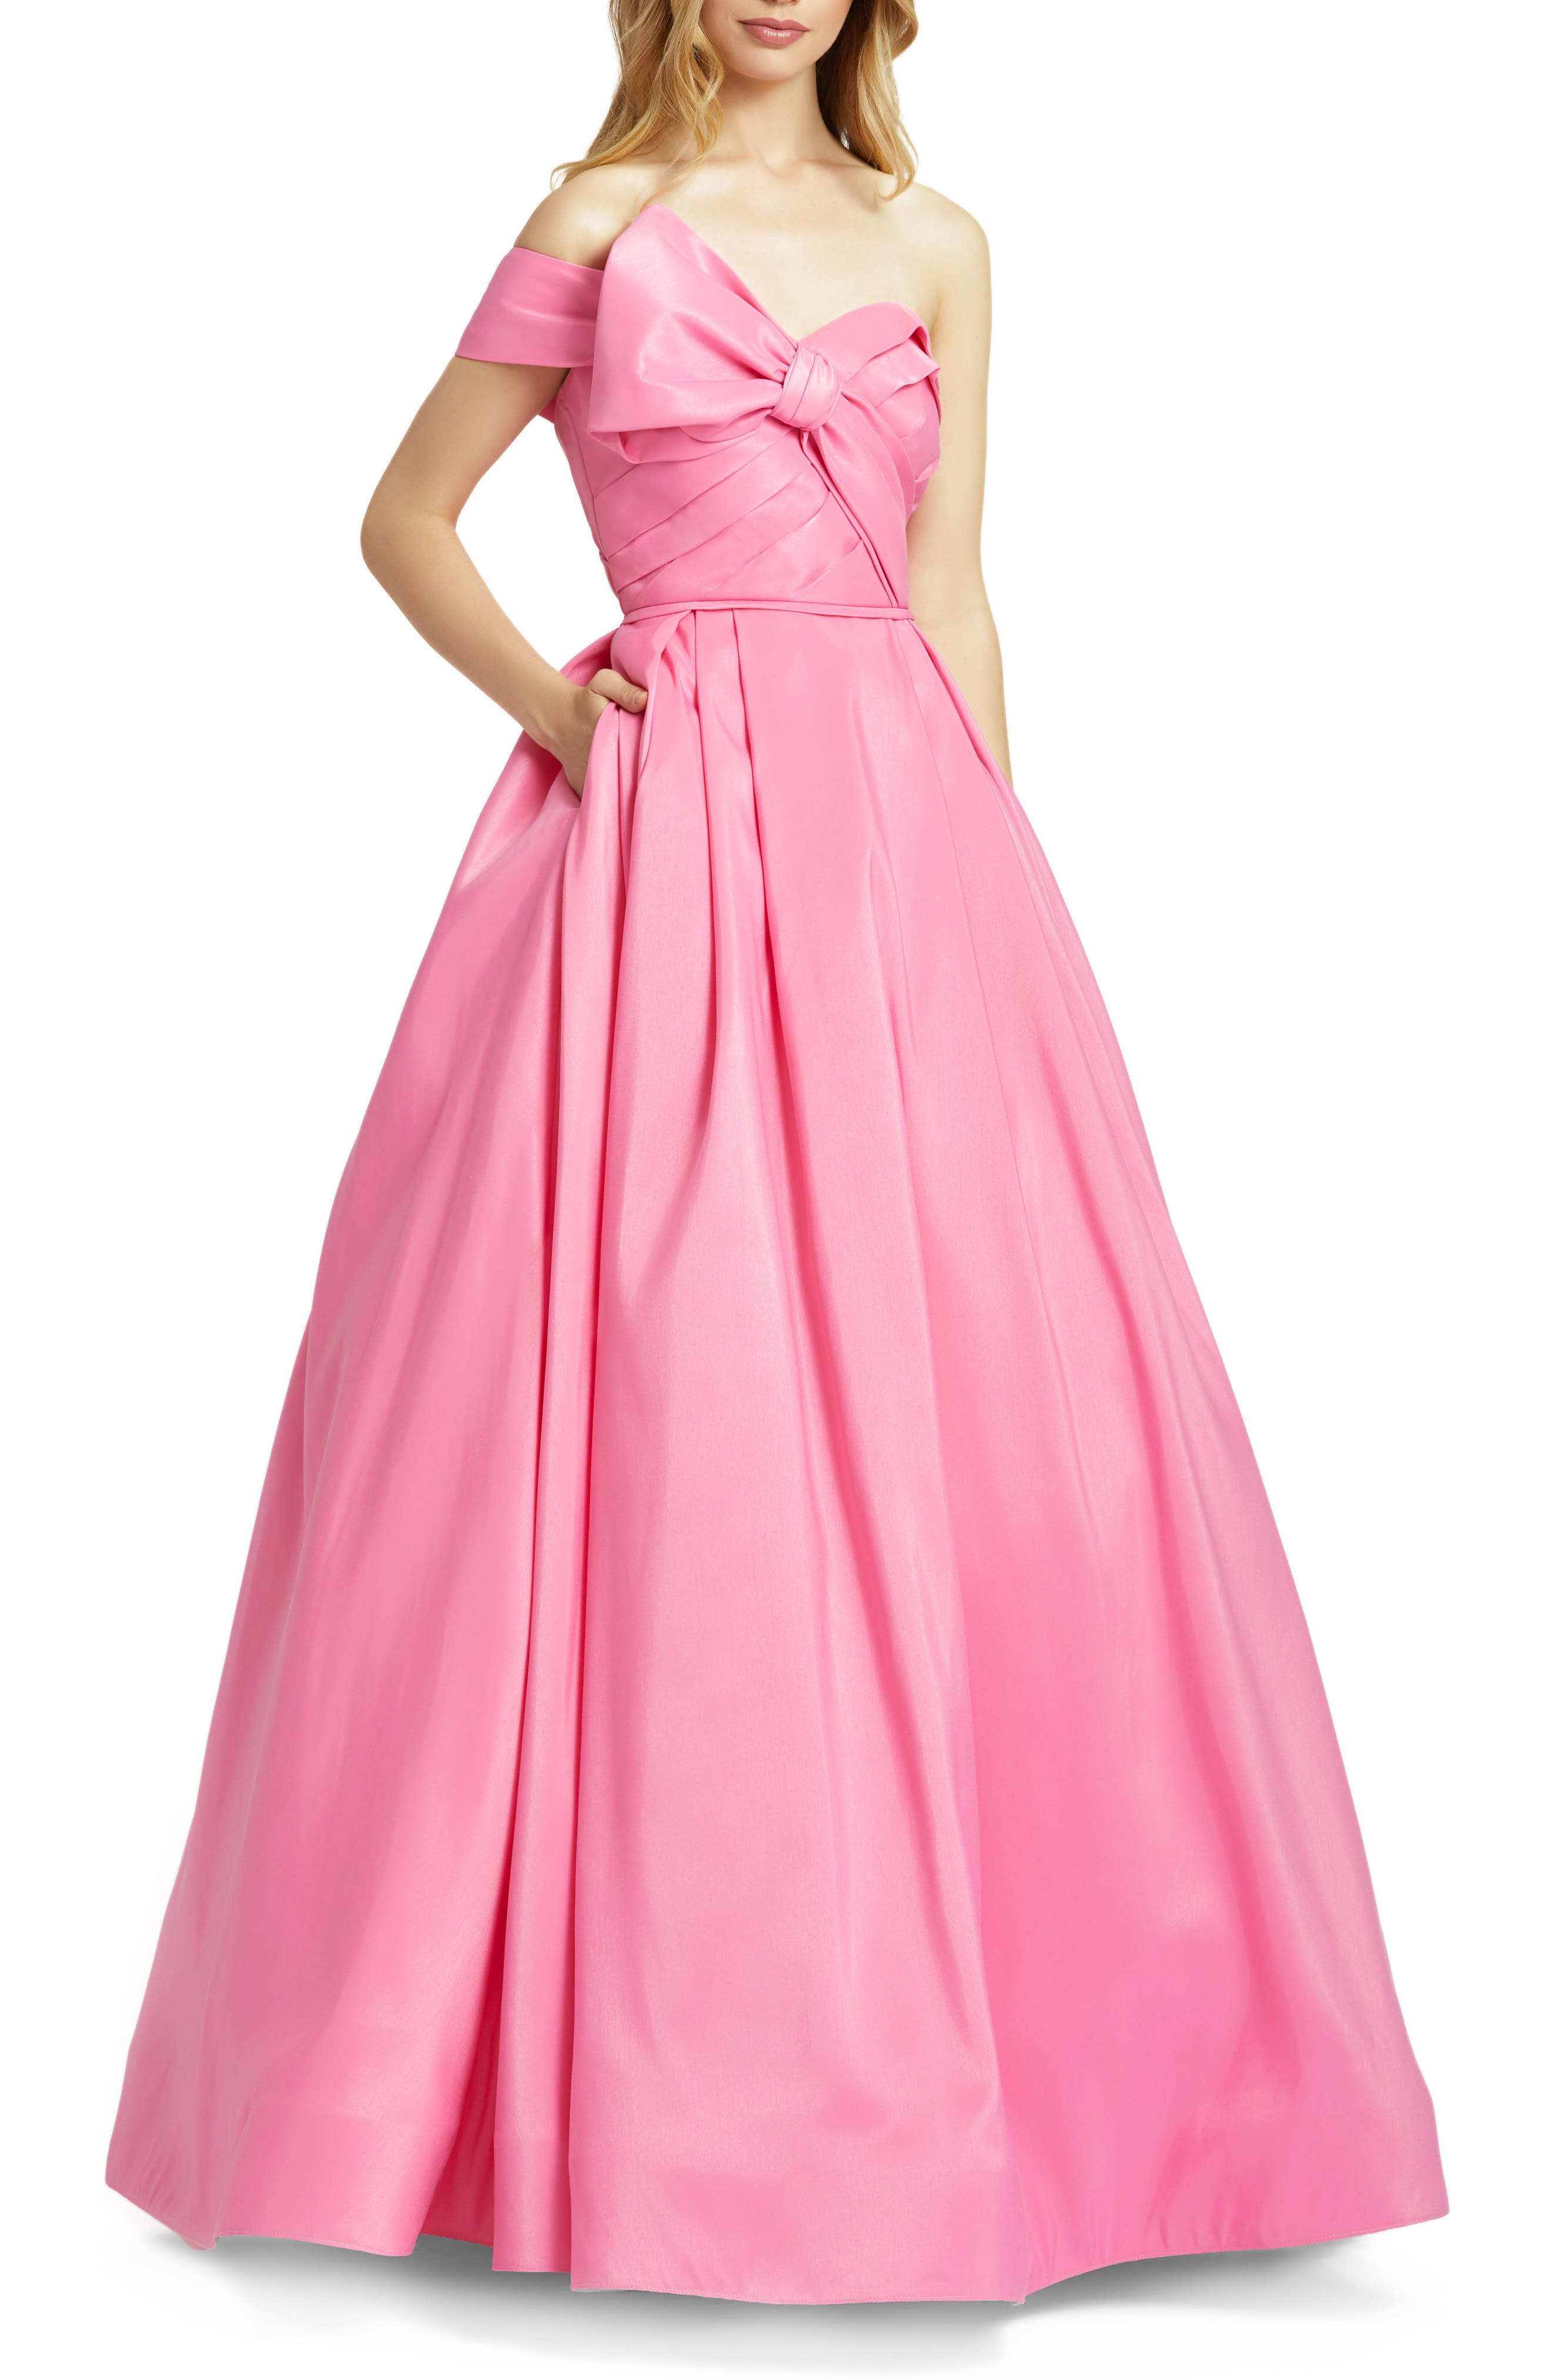 1950s Style Clothing & Fashion Womens MAC Duggal One-Shoulder Bow Ballgown Size 4 - Pink $398.00 AT vintagedancer.com